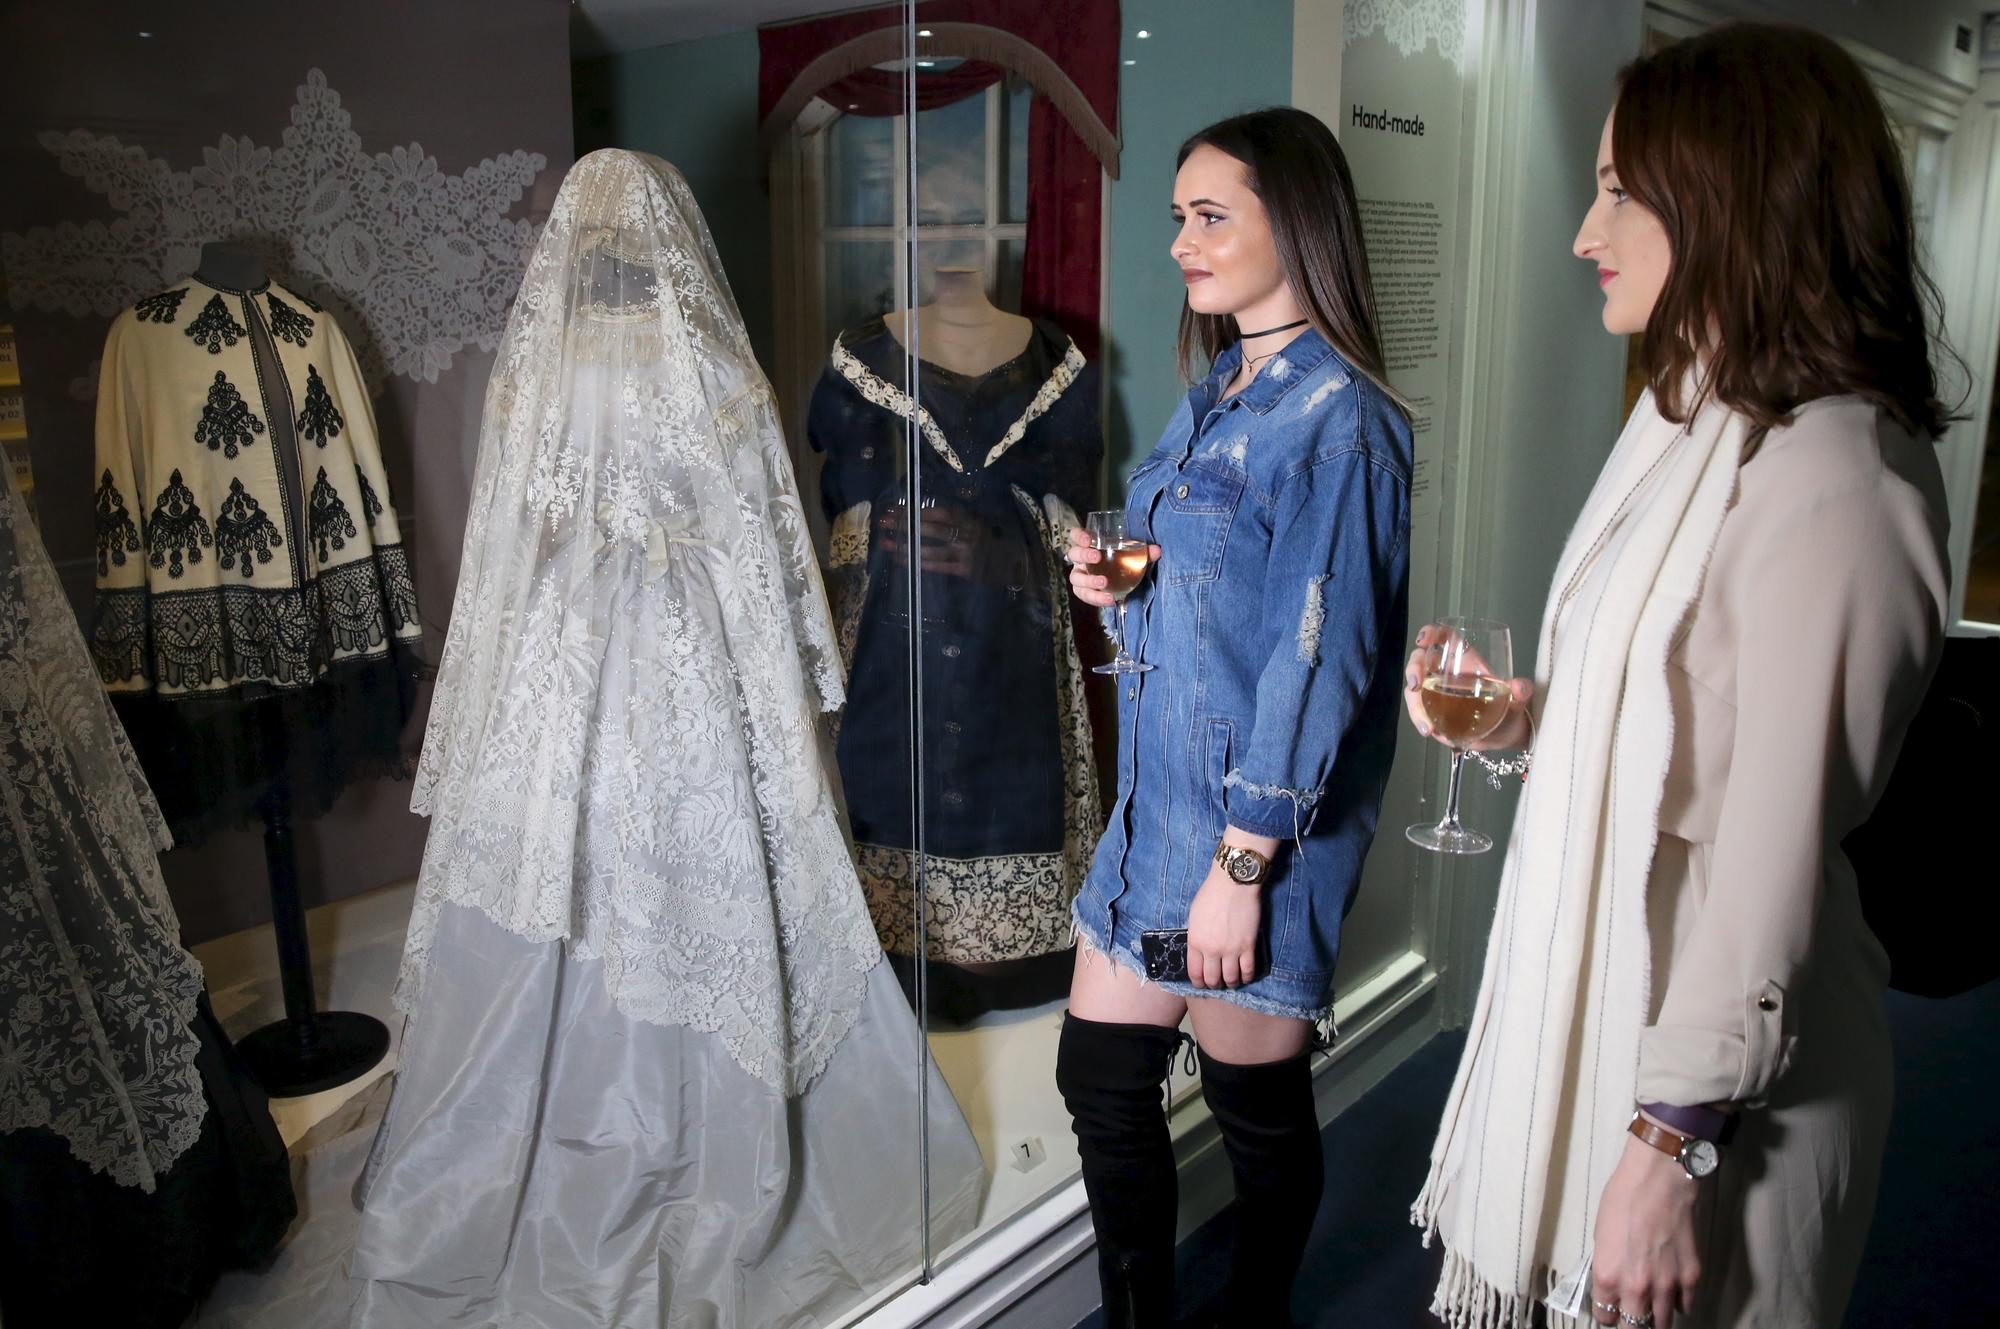 Image: Private View of Lace Exhibition